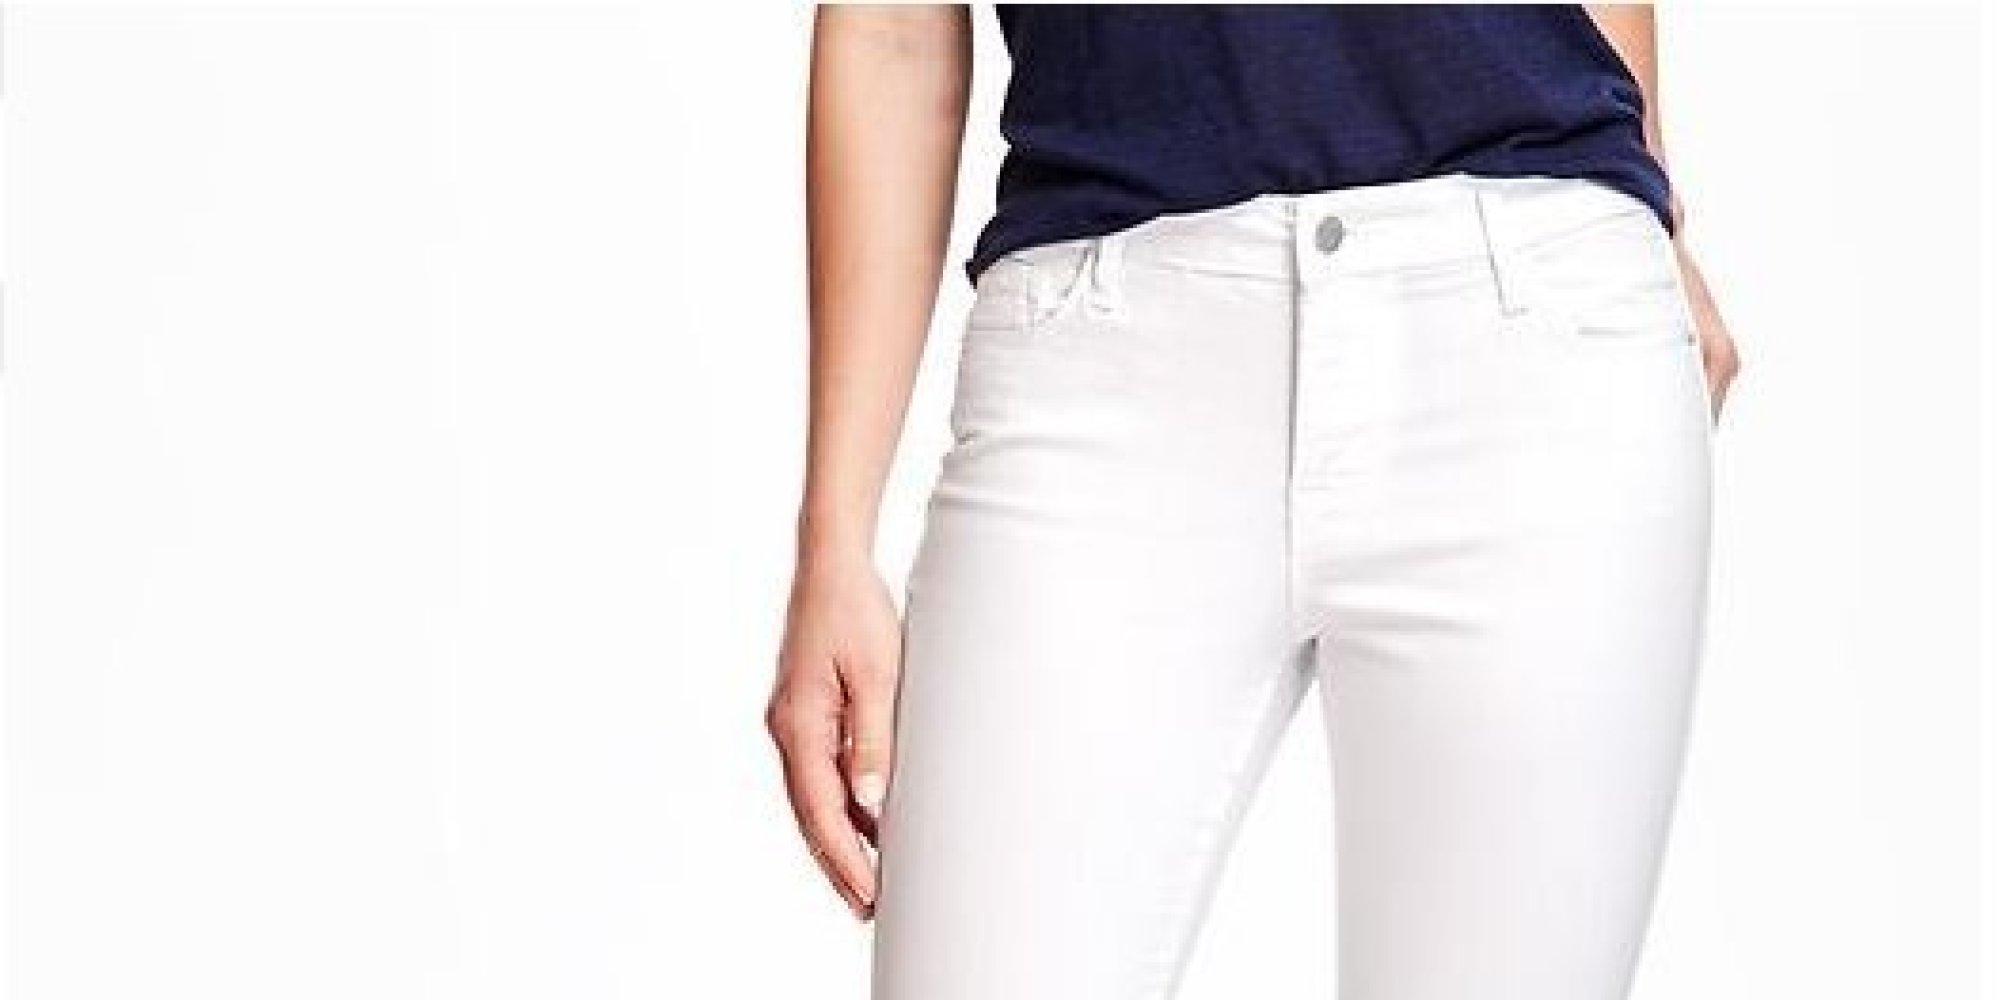 How To Get Stains Out Of White Jeans - Jeans Am